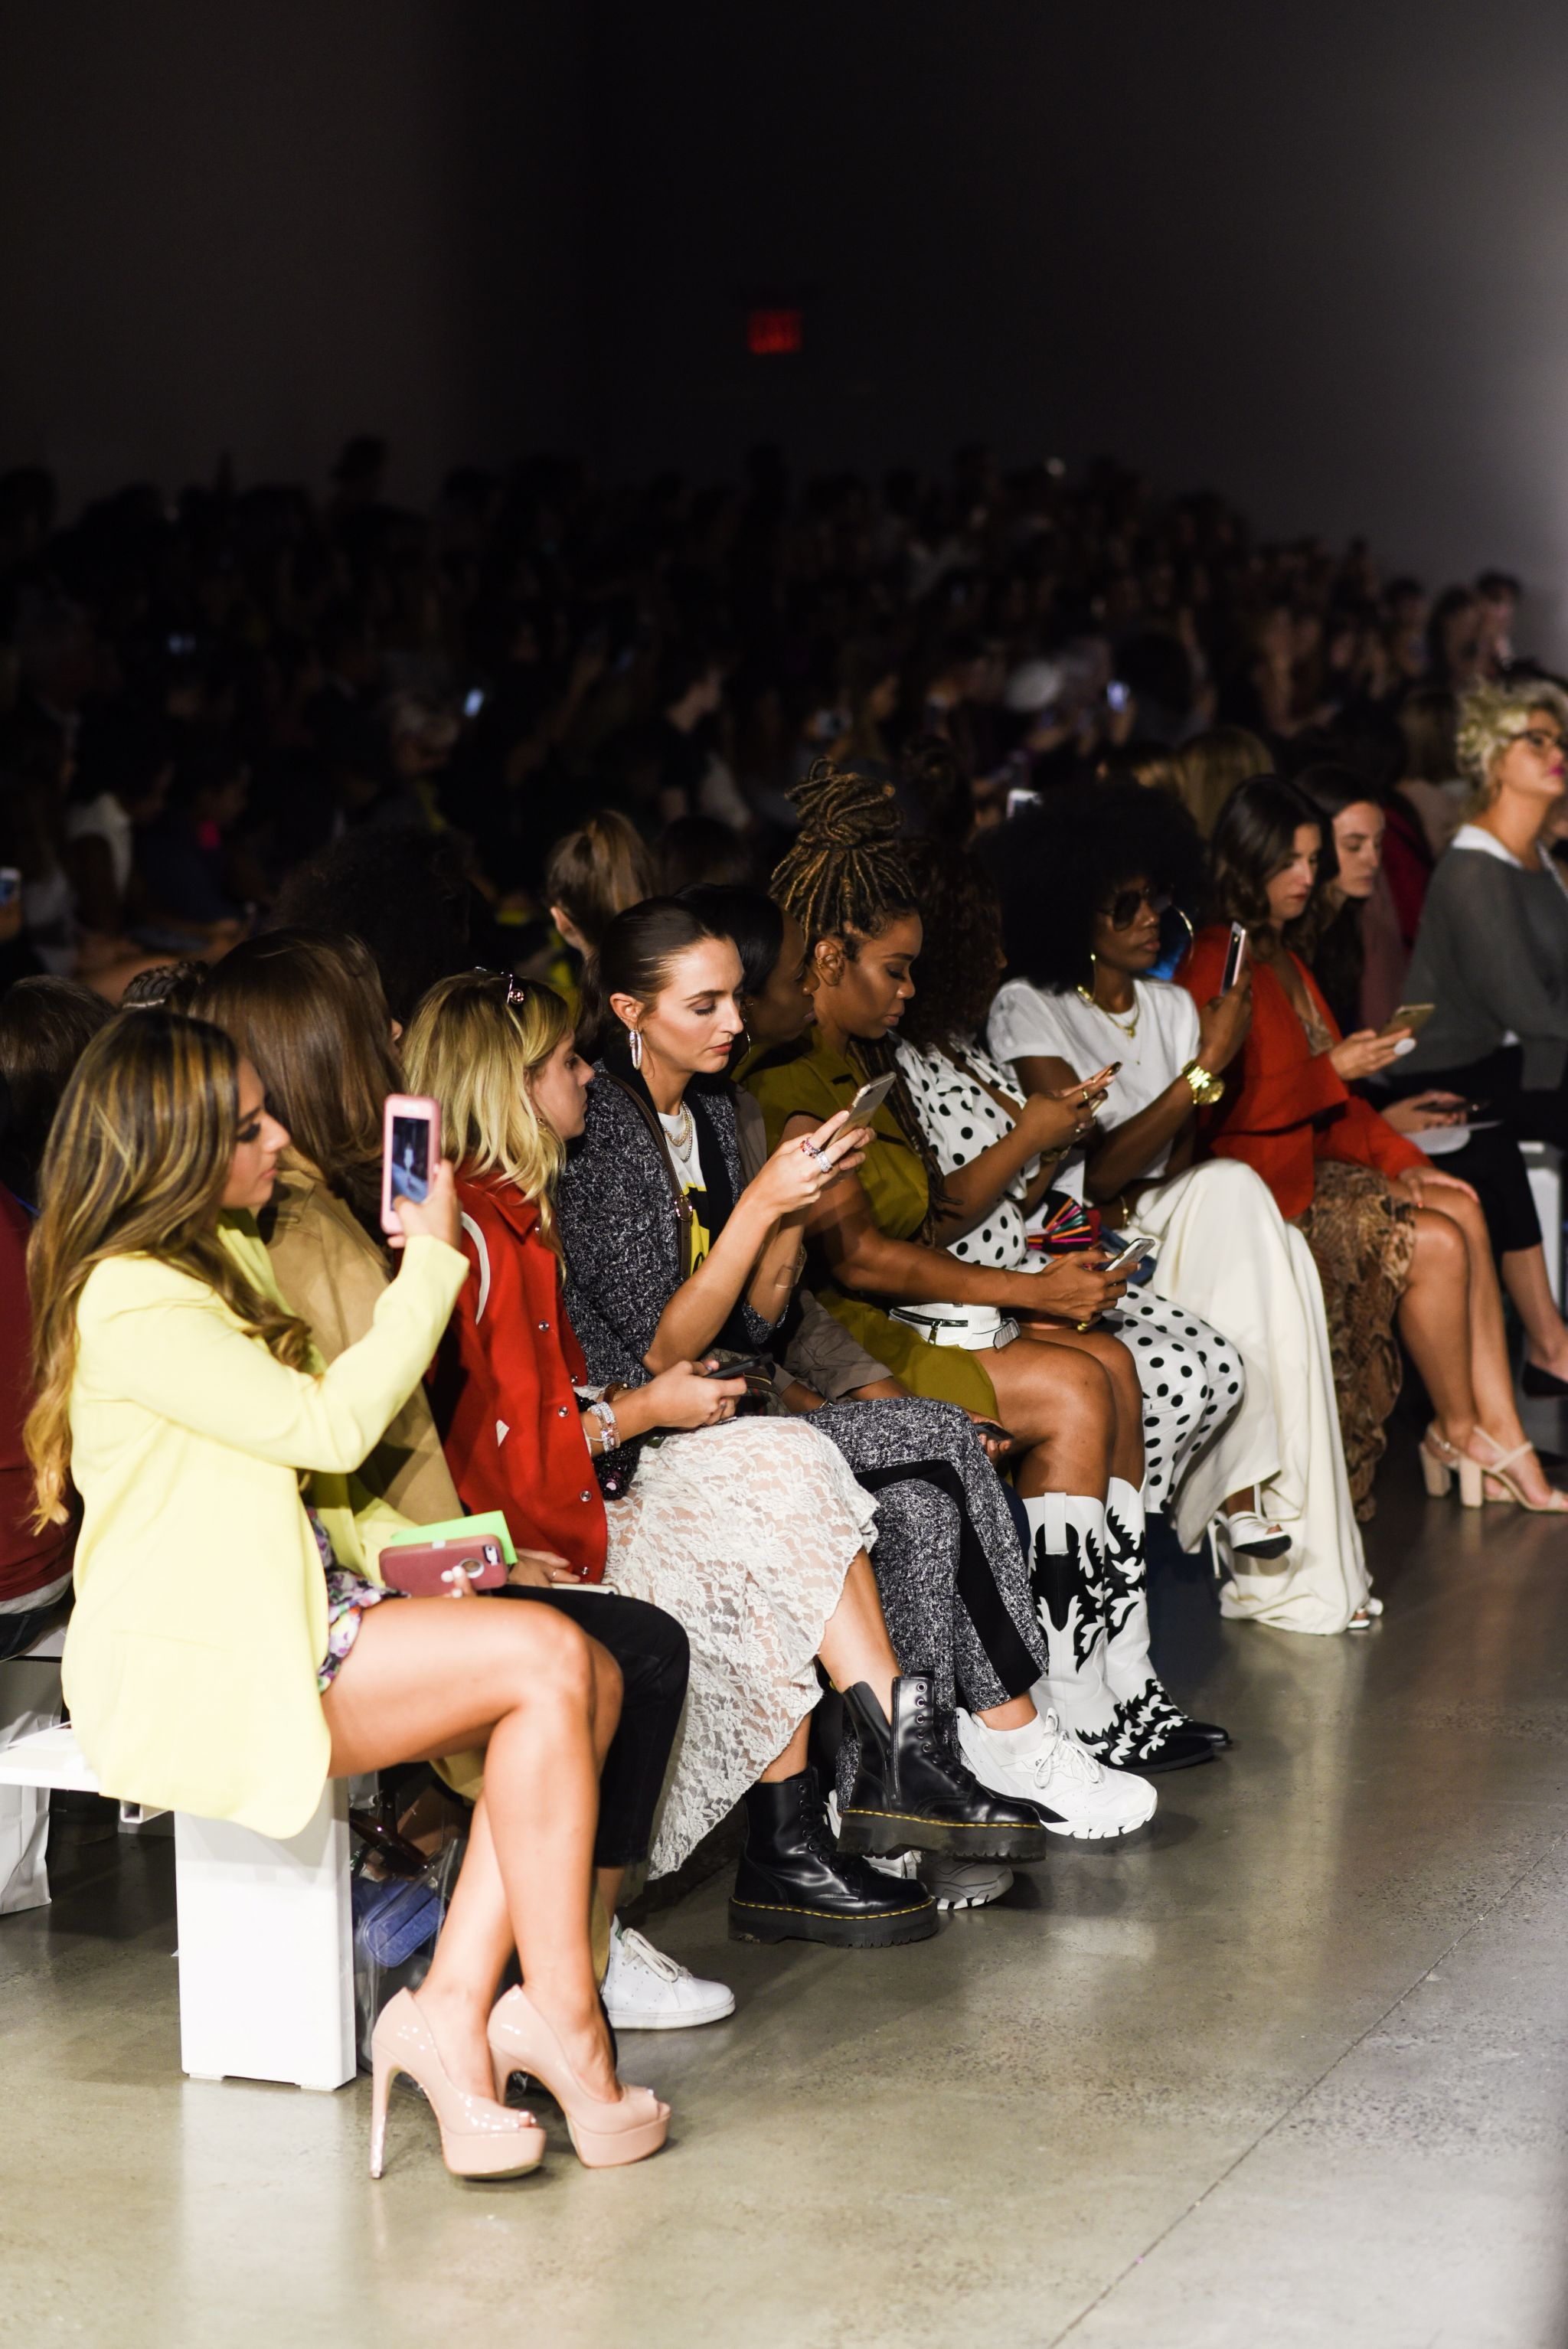 How to Prepare for New York Fashion Week and NYFW Tips